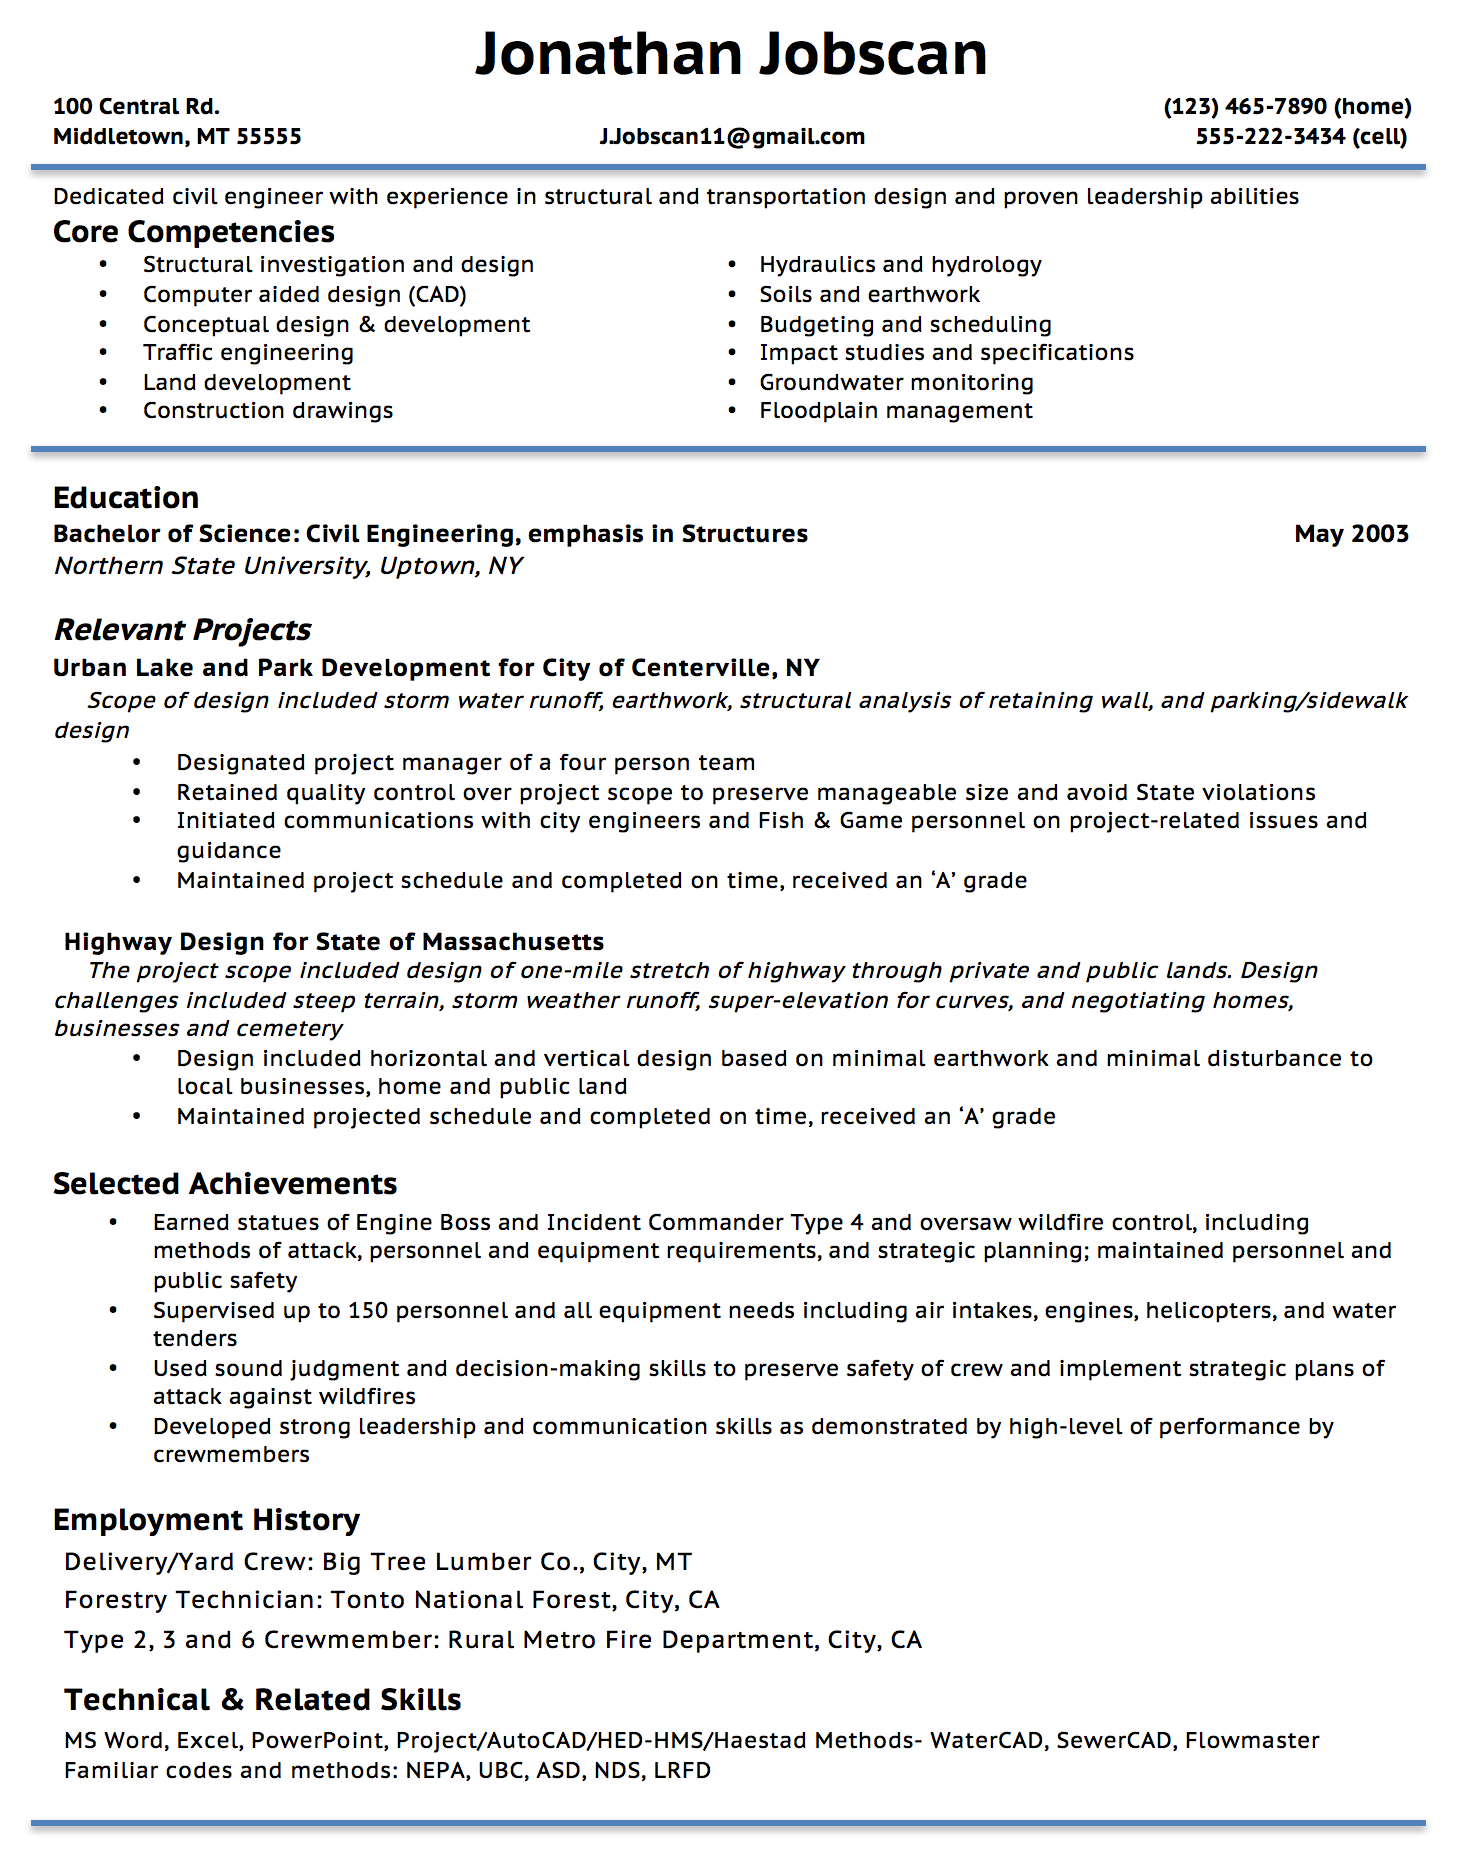 Opposenewapstandardsus  Unusual Resume Writing Guide  Jobscan With Fascinating Example Of A Functional Resume Format With Agreeable How To Write A One Page Resume Also Sample Resume Cashier In Addition Massage Therapist Resumes And How Long Does A Resume Have To Be As Well As Volunteer Work In Resume Additionally Salary On Resume From Jobscanco With Opposenewapstandardsus  Fascinating Resume Writing Guide  Jobscan With Agreeable Example Of A Functional Resume Format And Unusual How To Write A One Page Resume Also Sample Resume Cashier In Addition Massage Therapist Resumes From Jobscanco